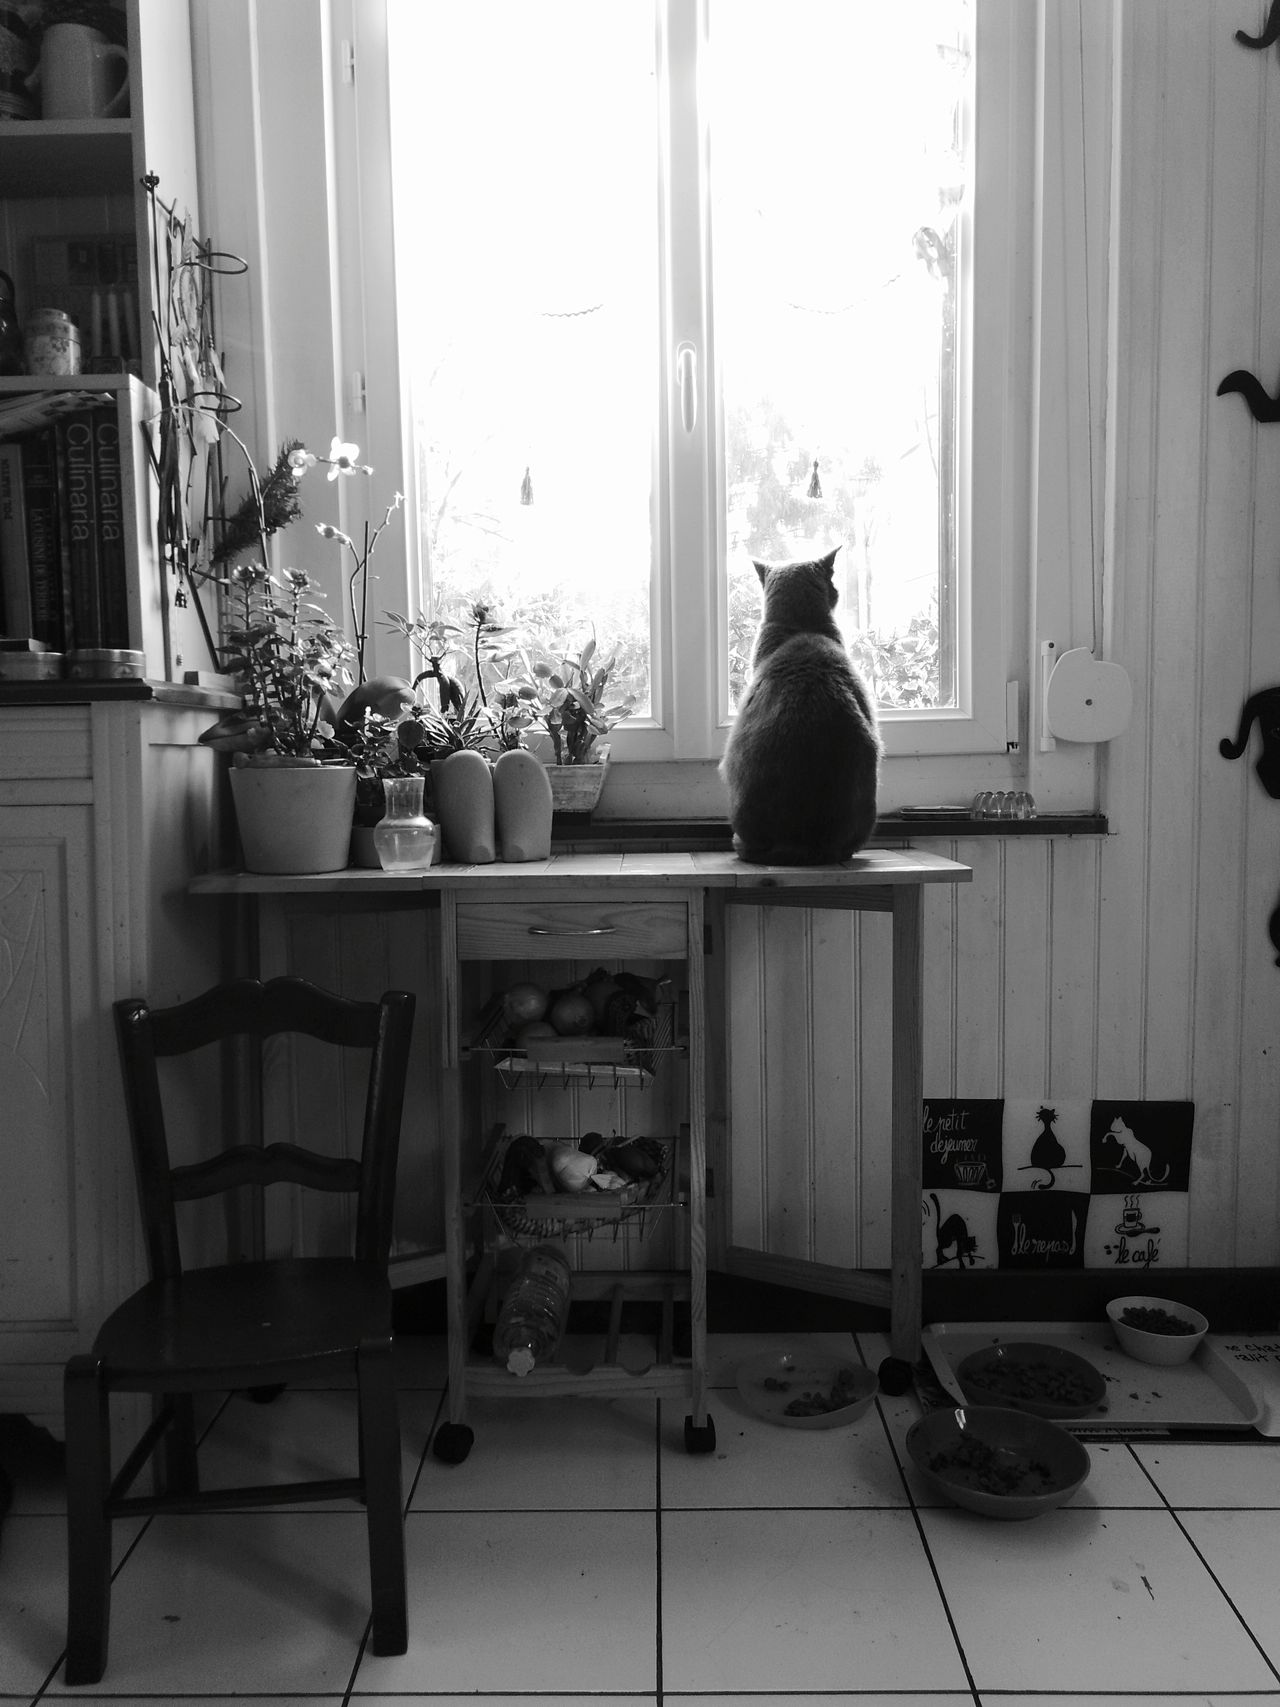 Chat à la fenêtre.🐈(recto)Indoors  Window Home Interior No People Day Chair Cat Feline Domestic Cat Animal Themes One Animal Pets Domestic Animals Bnw Black And White